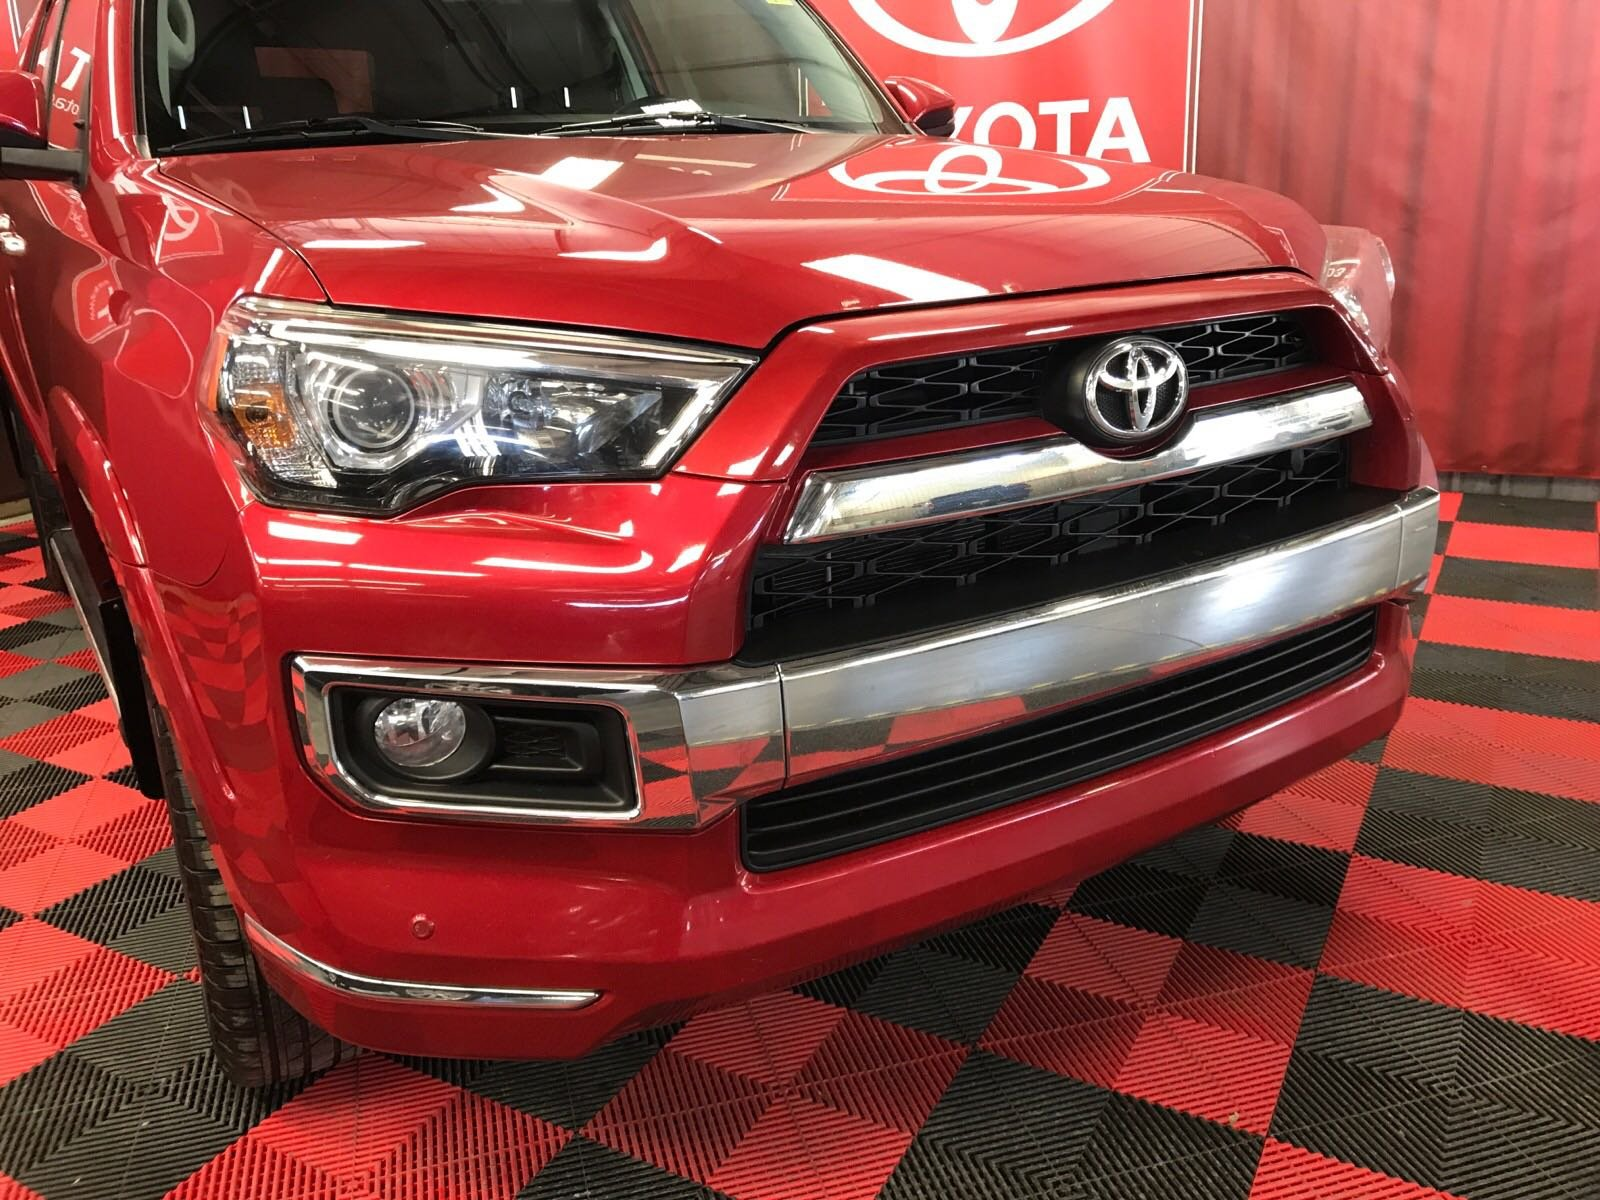 9b33b636f22ba1d77beecfb5bcb81bdc Great Description About Used toyota 4runner for Sale